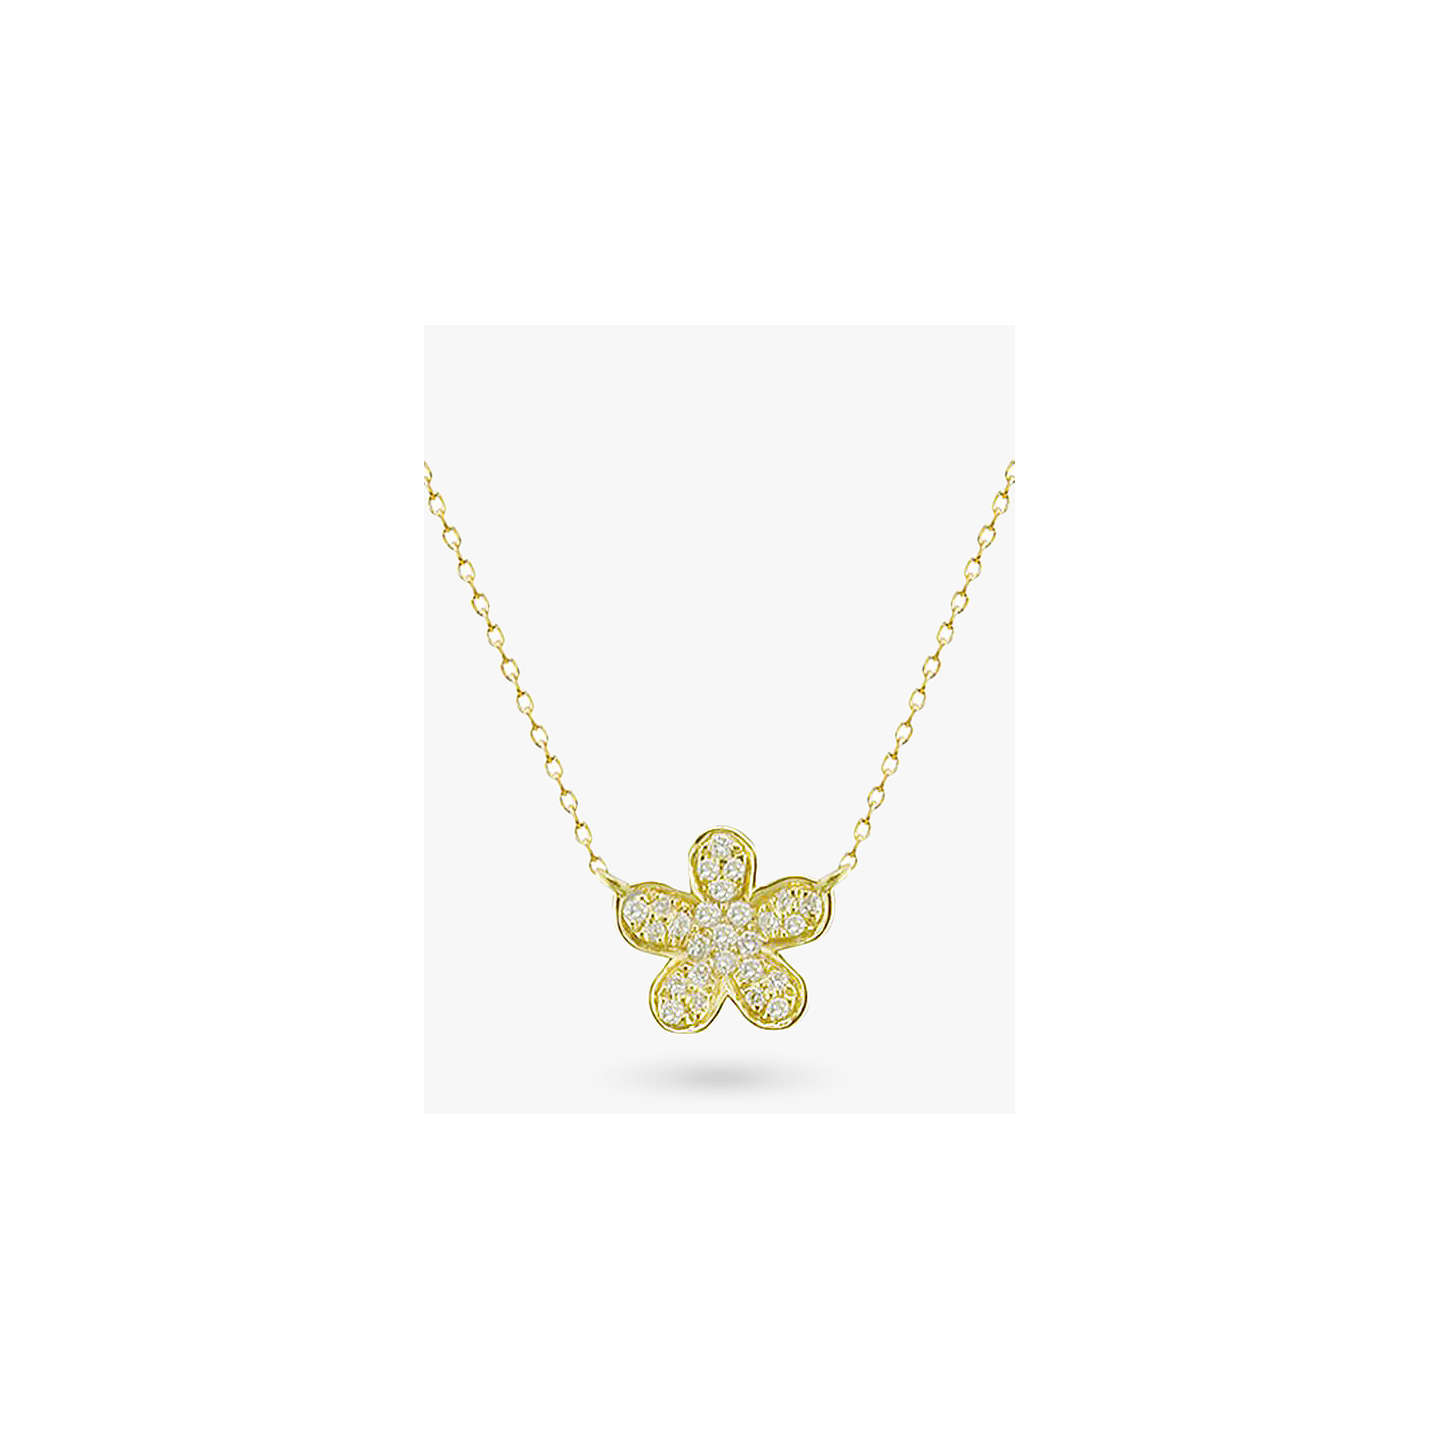 jewelry roberto gold coin lyst pendant women diamond s flower metallic necklace white